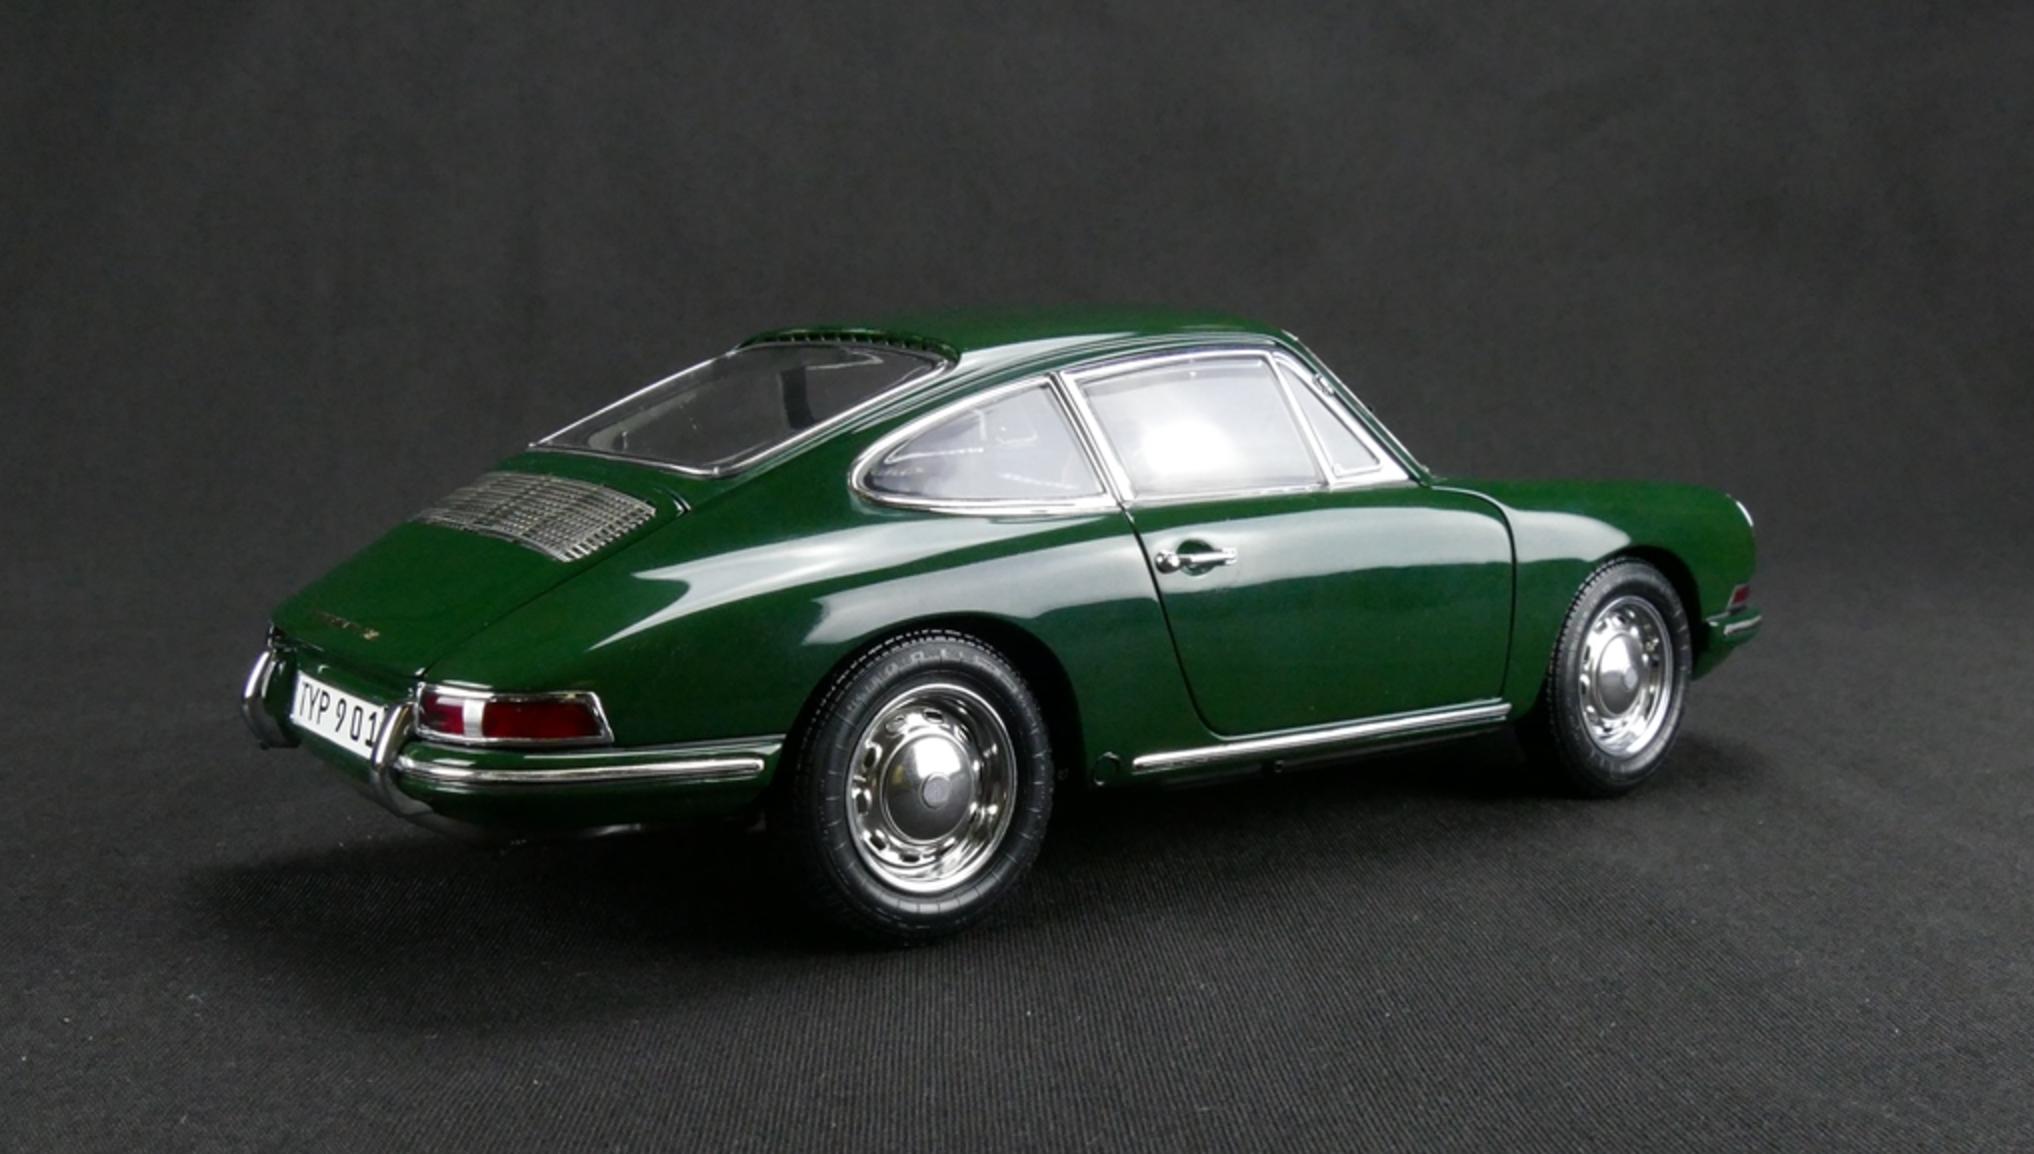 1964 Irish Green Porsche 901 By Cmc 1 18 Scale Choice Gear